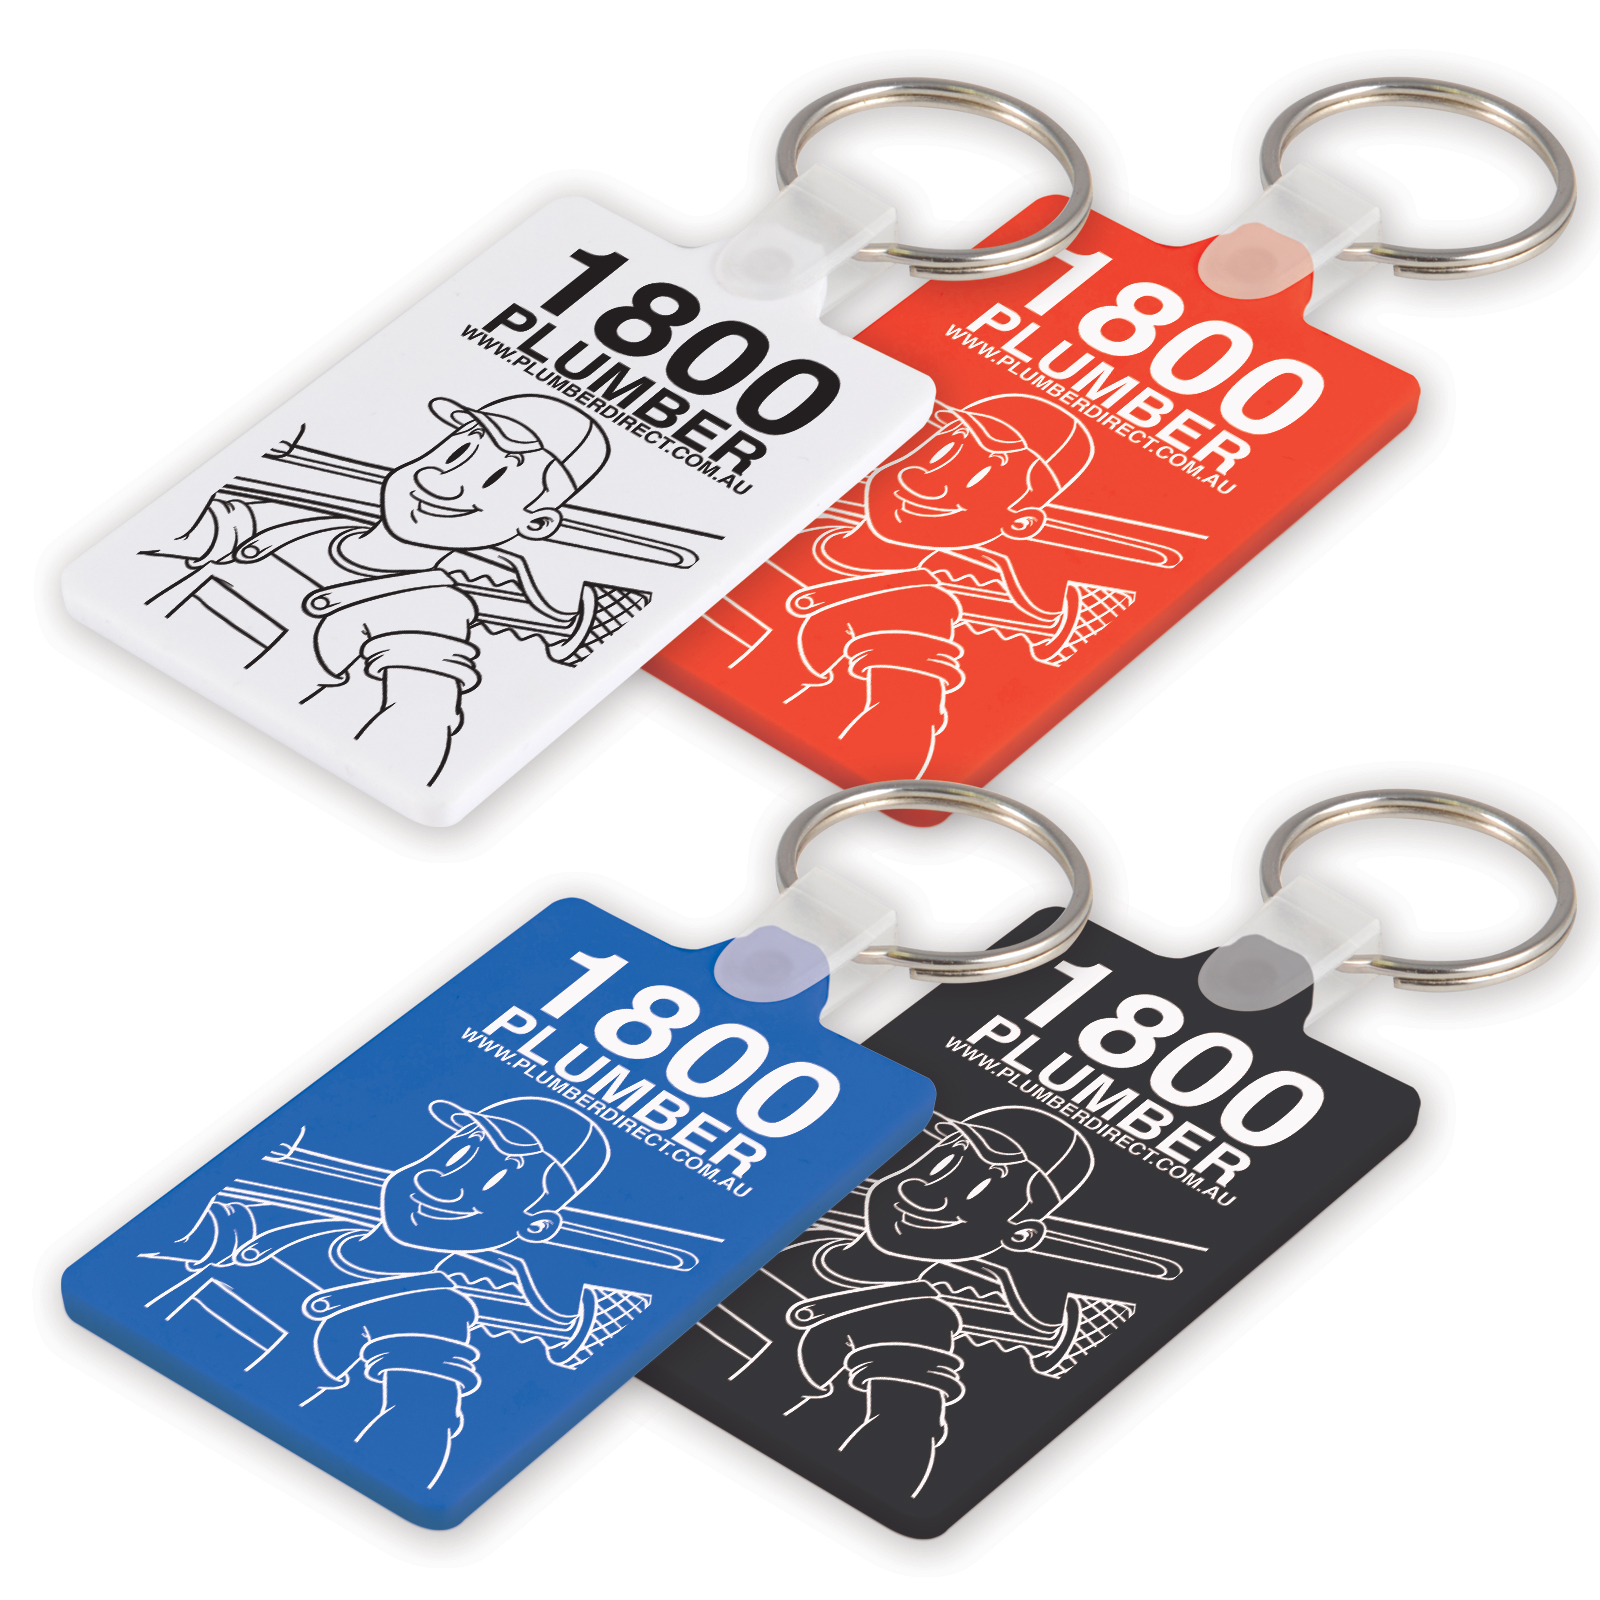 White Rectangular Soft PVC Keytag - Includes a 1 colour printed logo, From $0.78